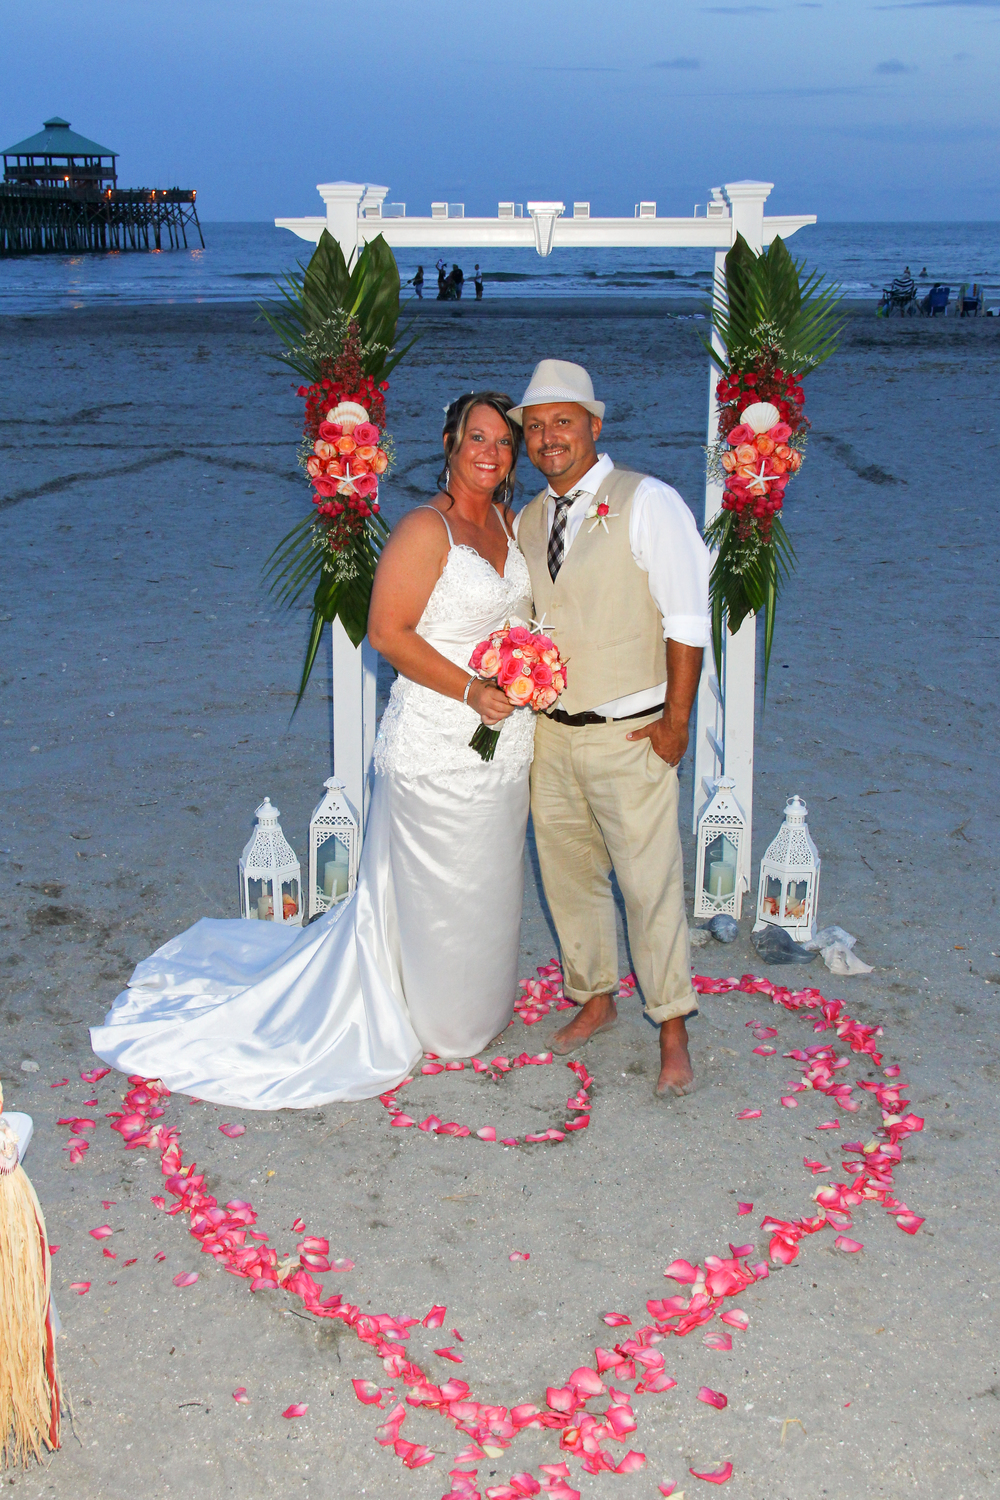 Beach Wedding Folly Beach Charleston SC The Tides Arch with flowers